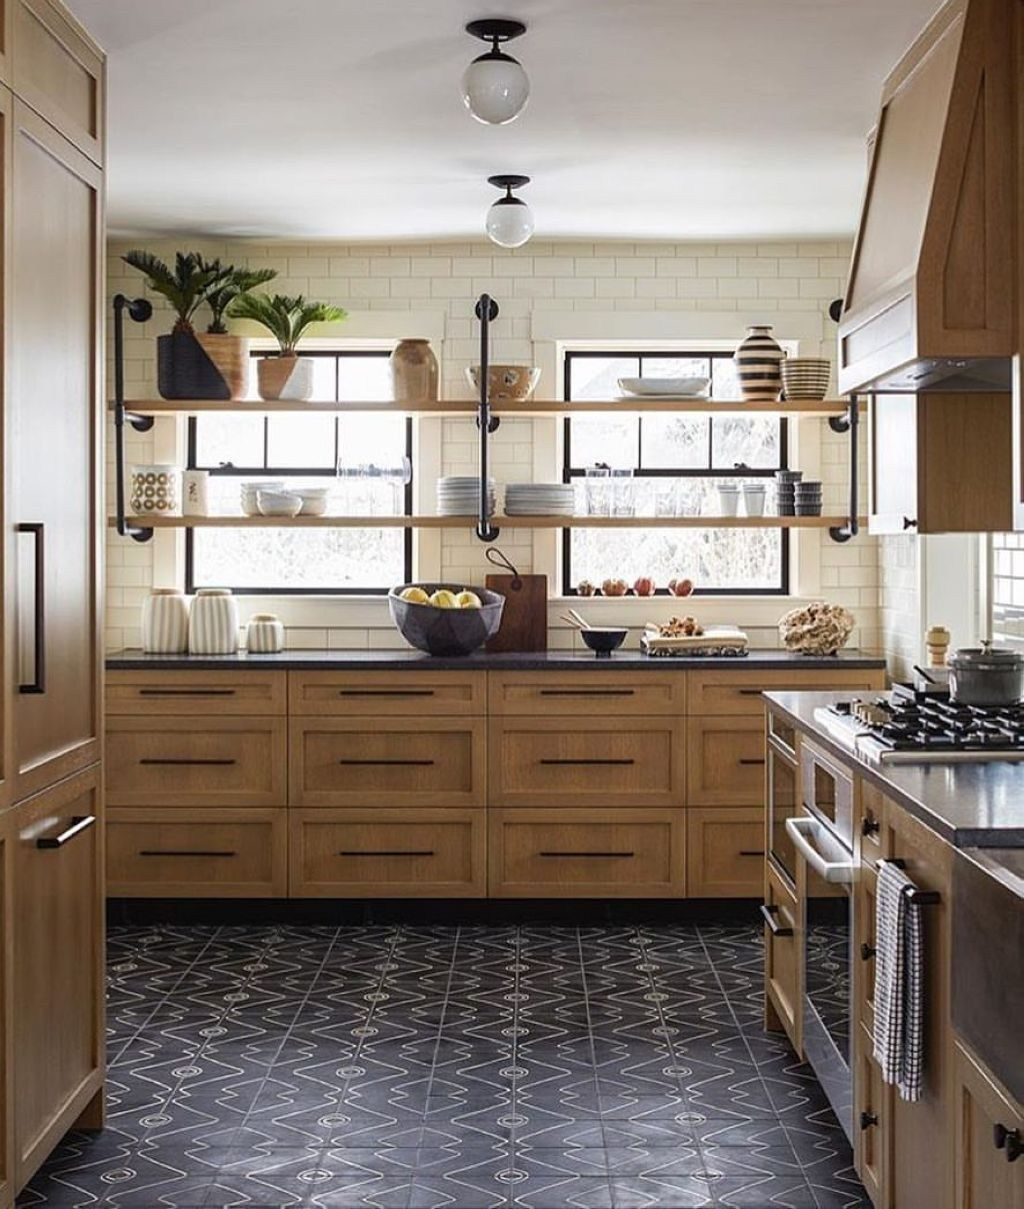 stunning farmhouse kitchen cabinets with natural wood 01 toparchitecture farmhouse kitchen on farmhouse kitchen cabinets id=94923